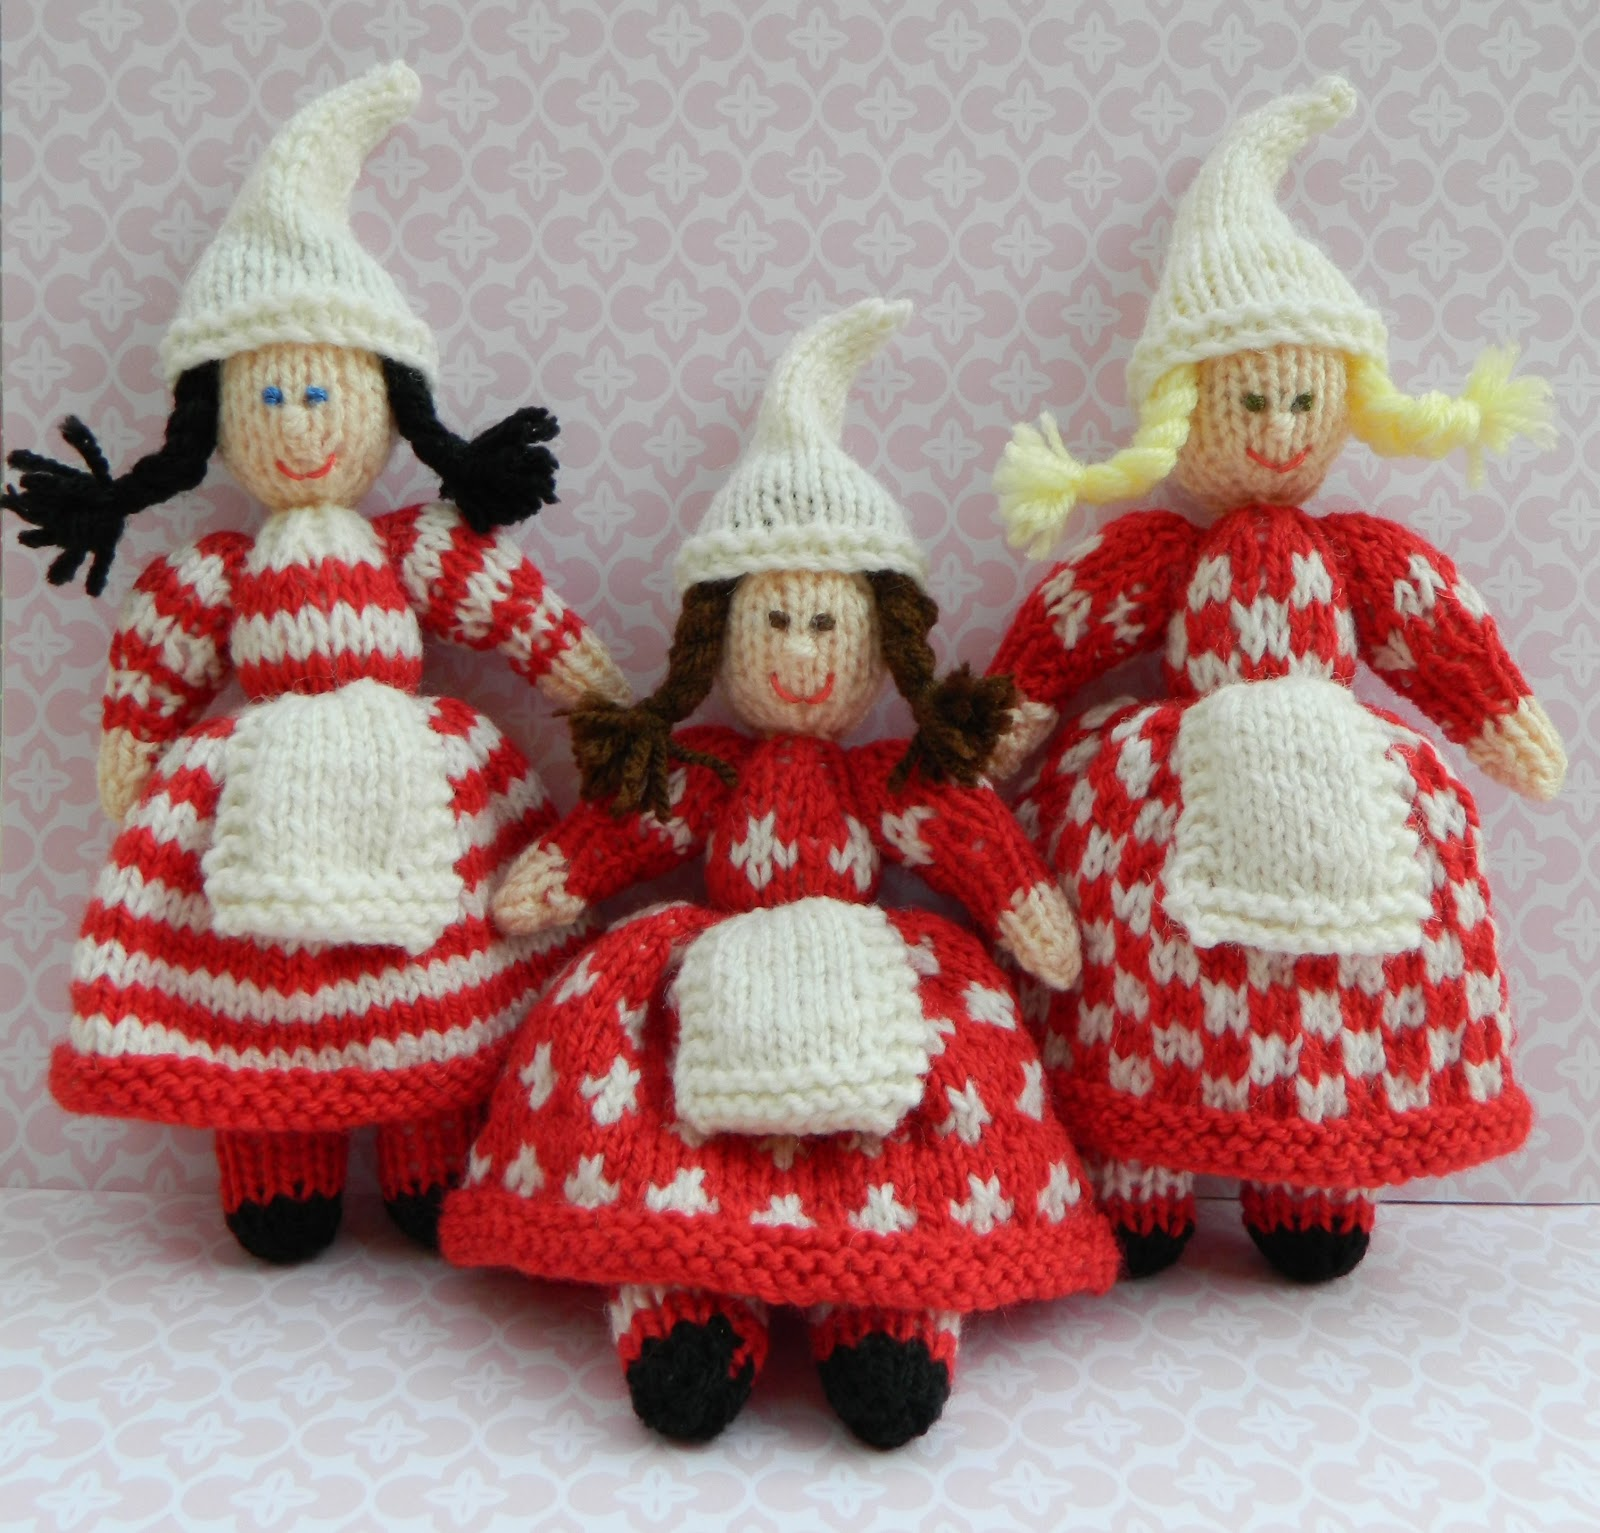 Edith Grace Designs - Original Doll & Toy Knitting Patterns & Cross S...